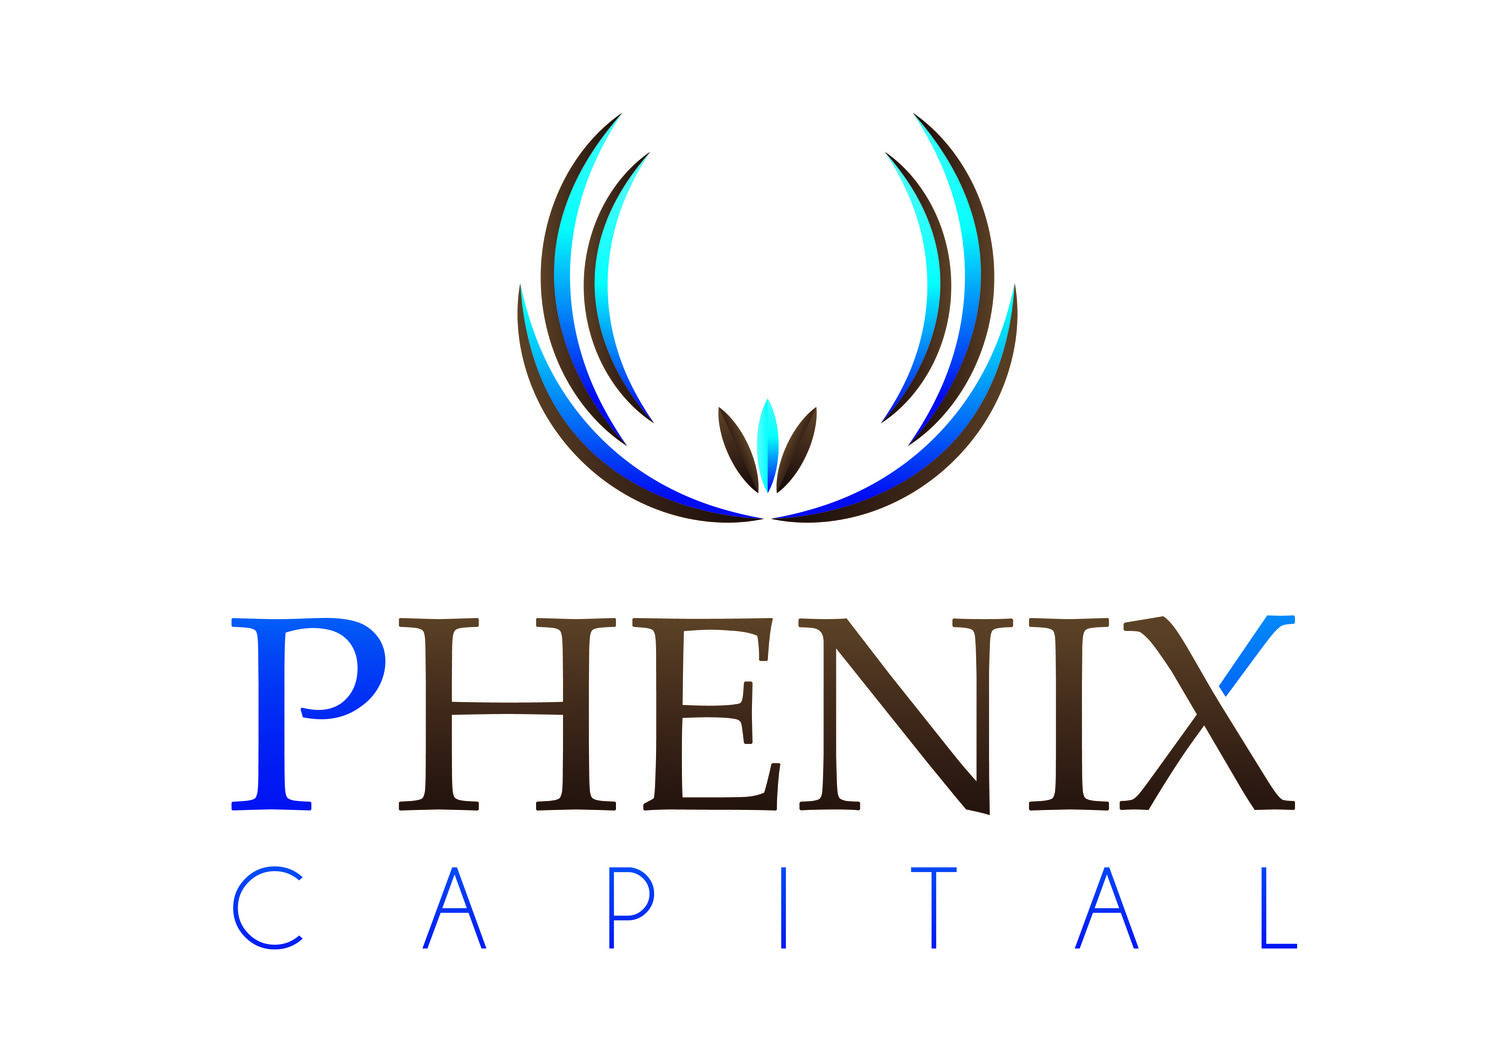 Phenix Capital